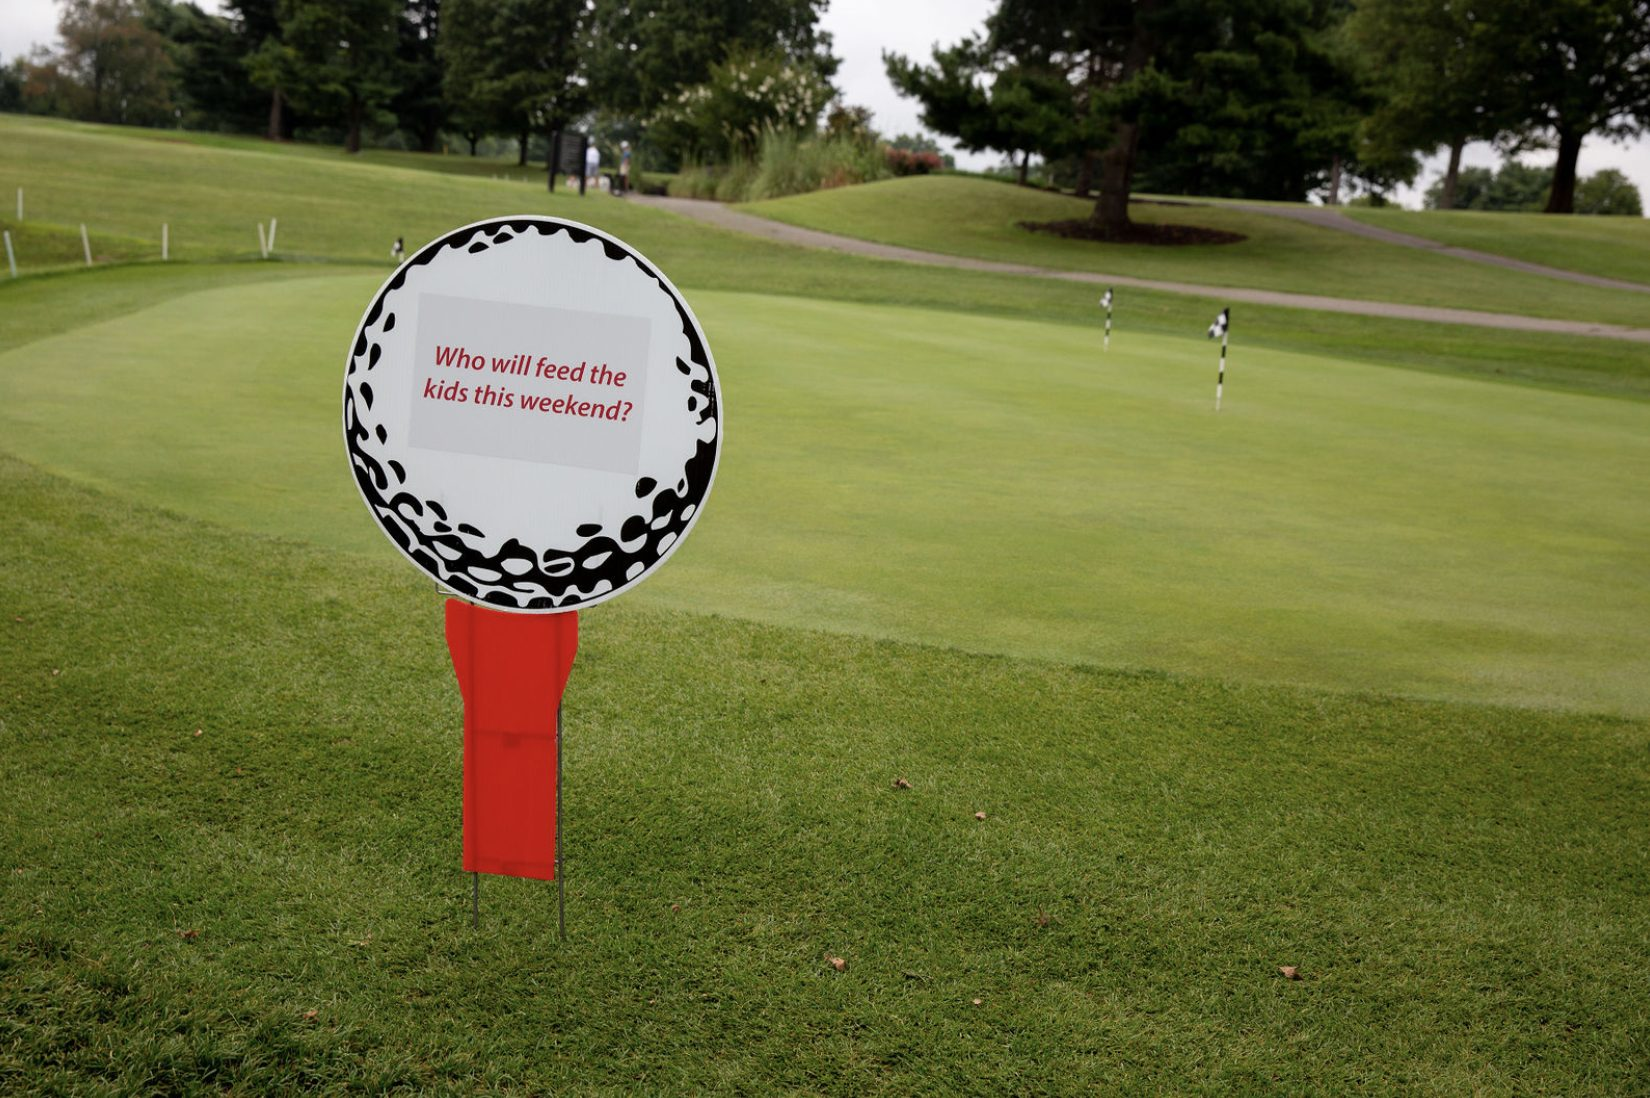 Golf Scramble Drives Donations to Help Feed Louisville Kids